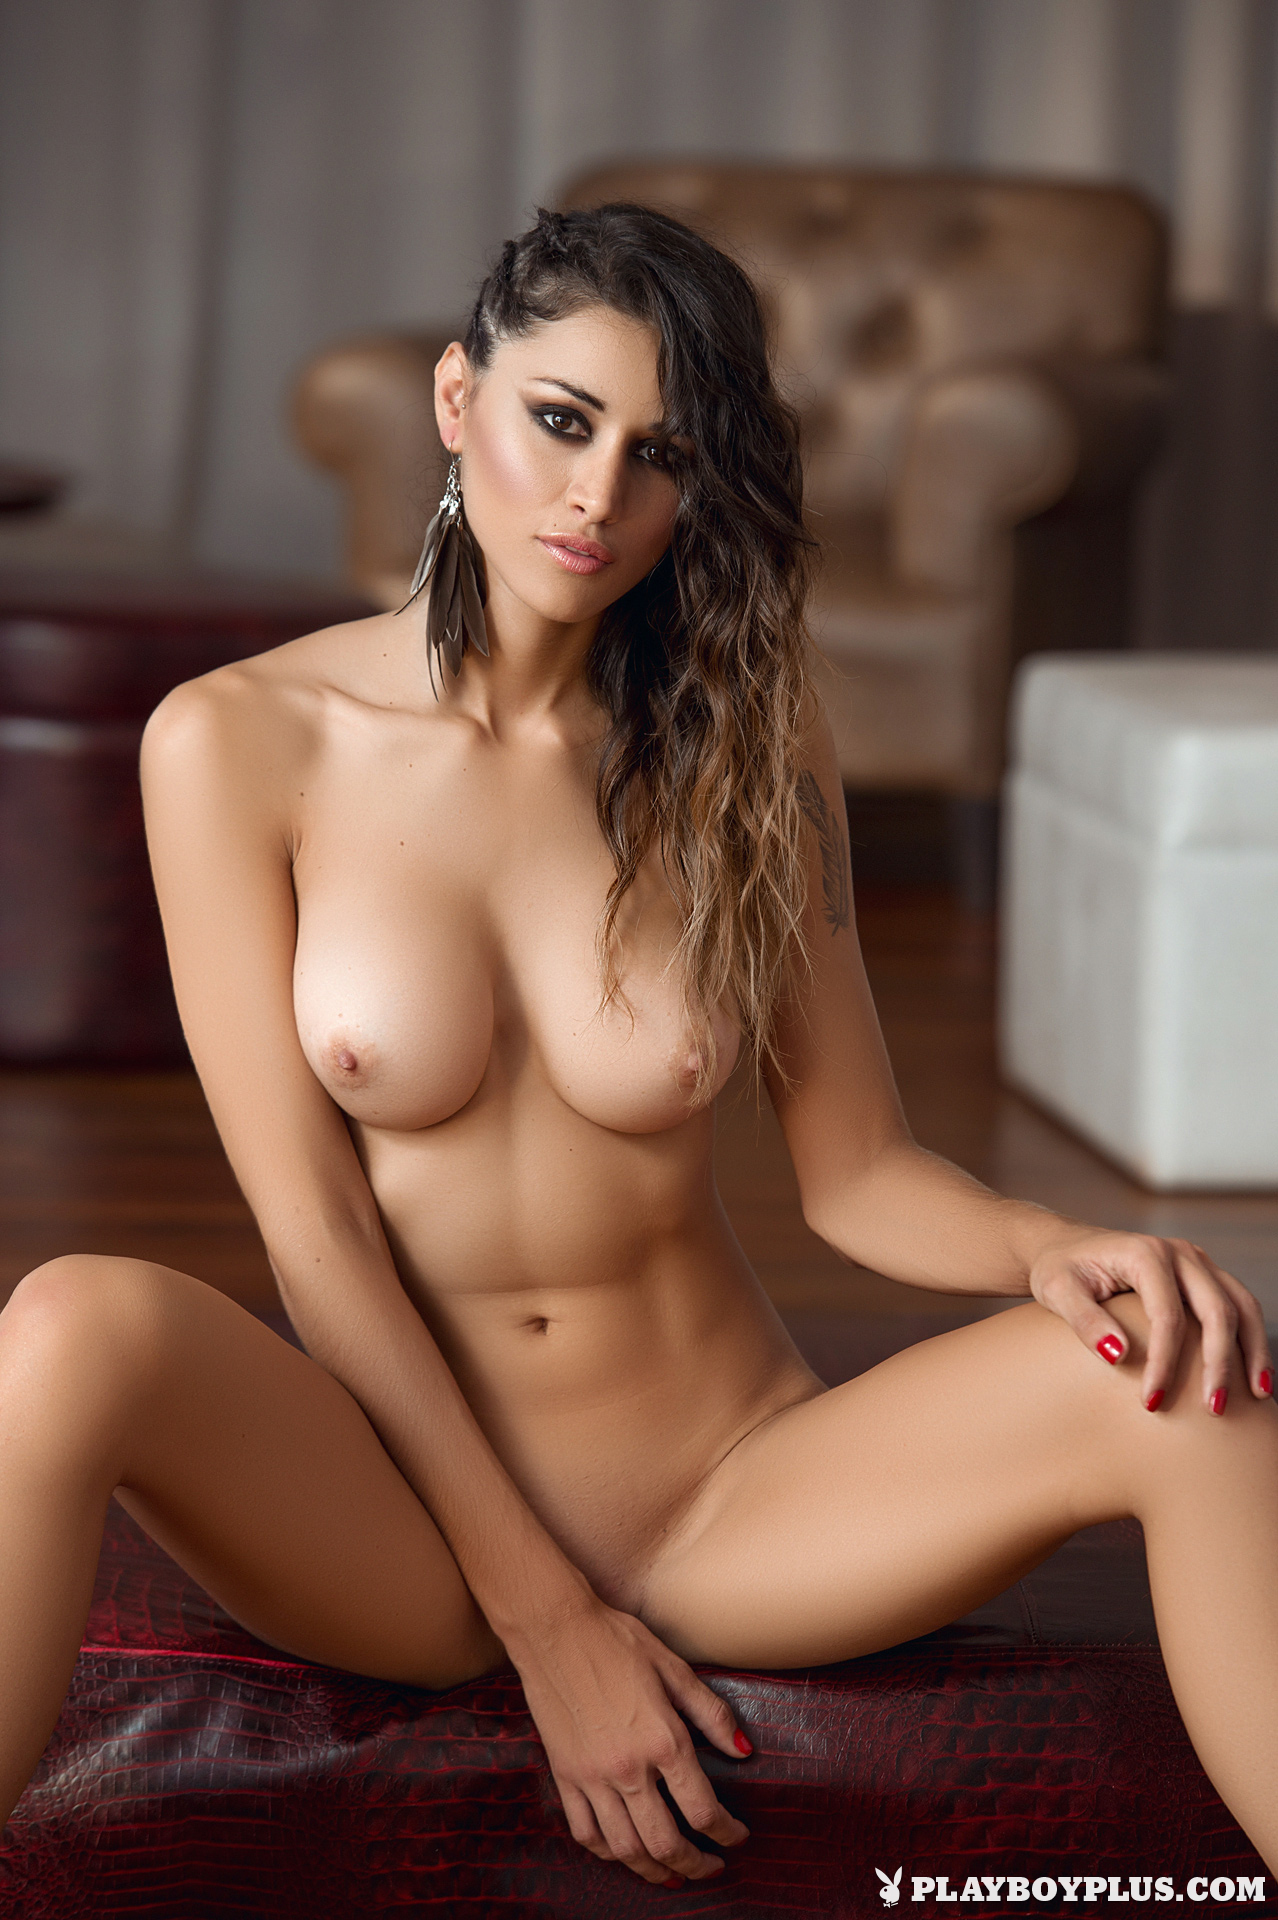 Necessary phrase... beautiful brunette tan busty latina models apologise